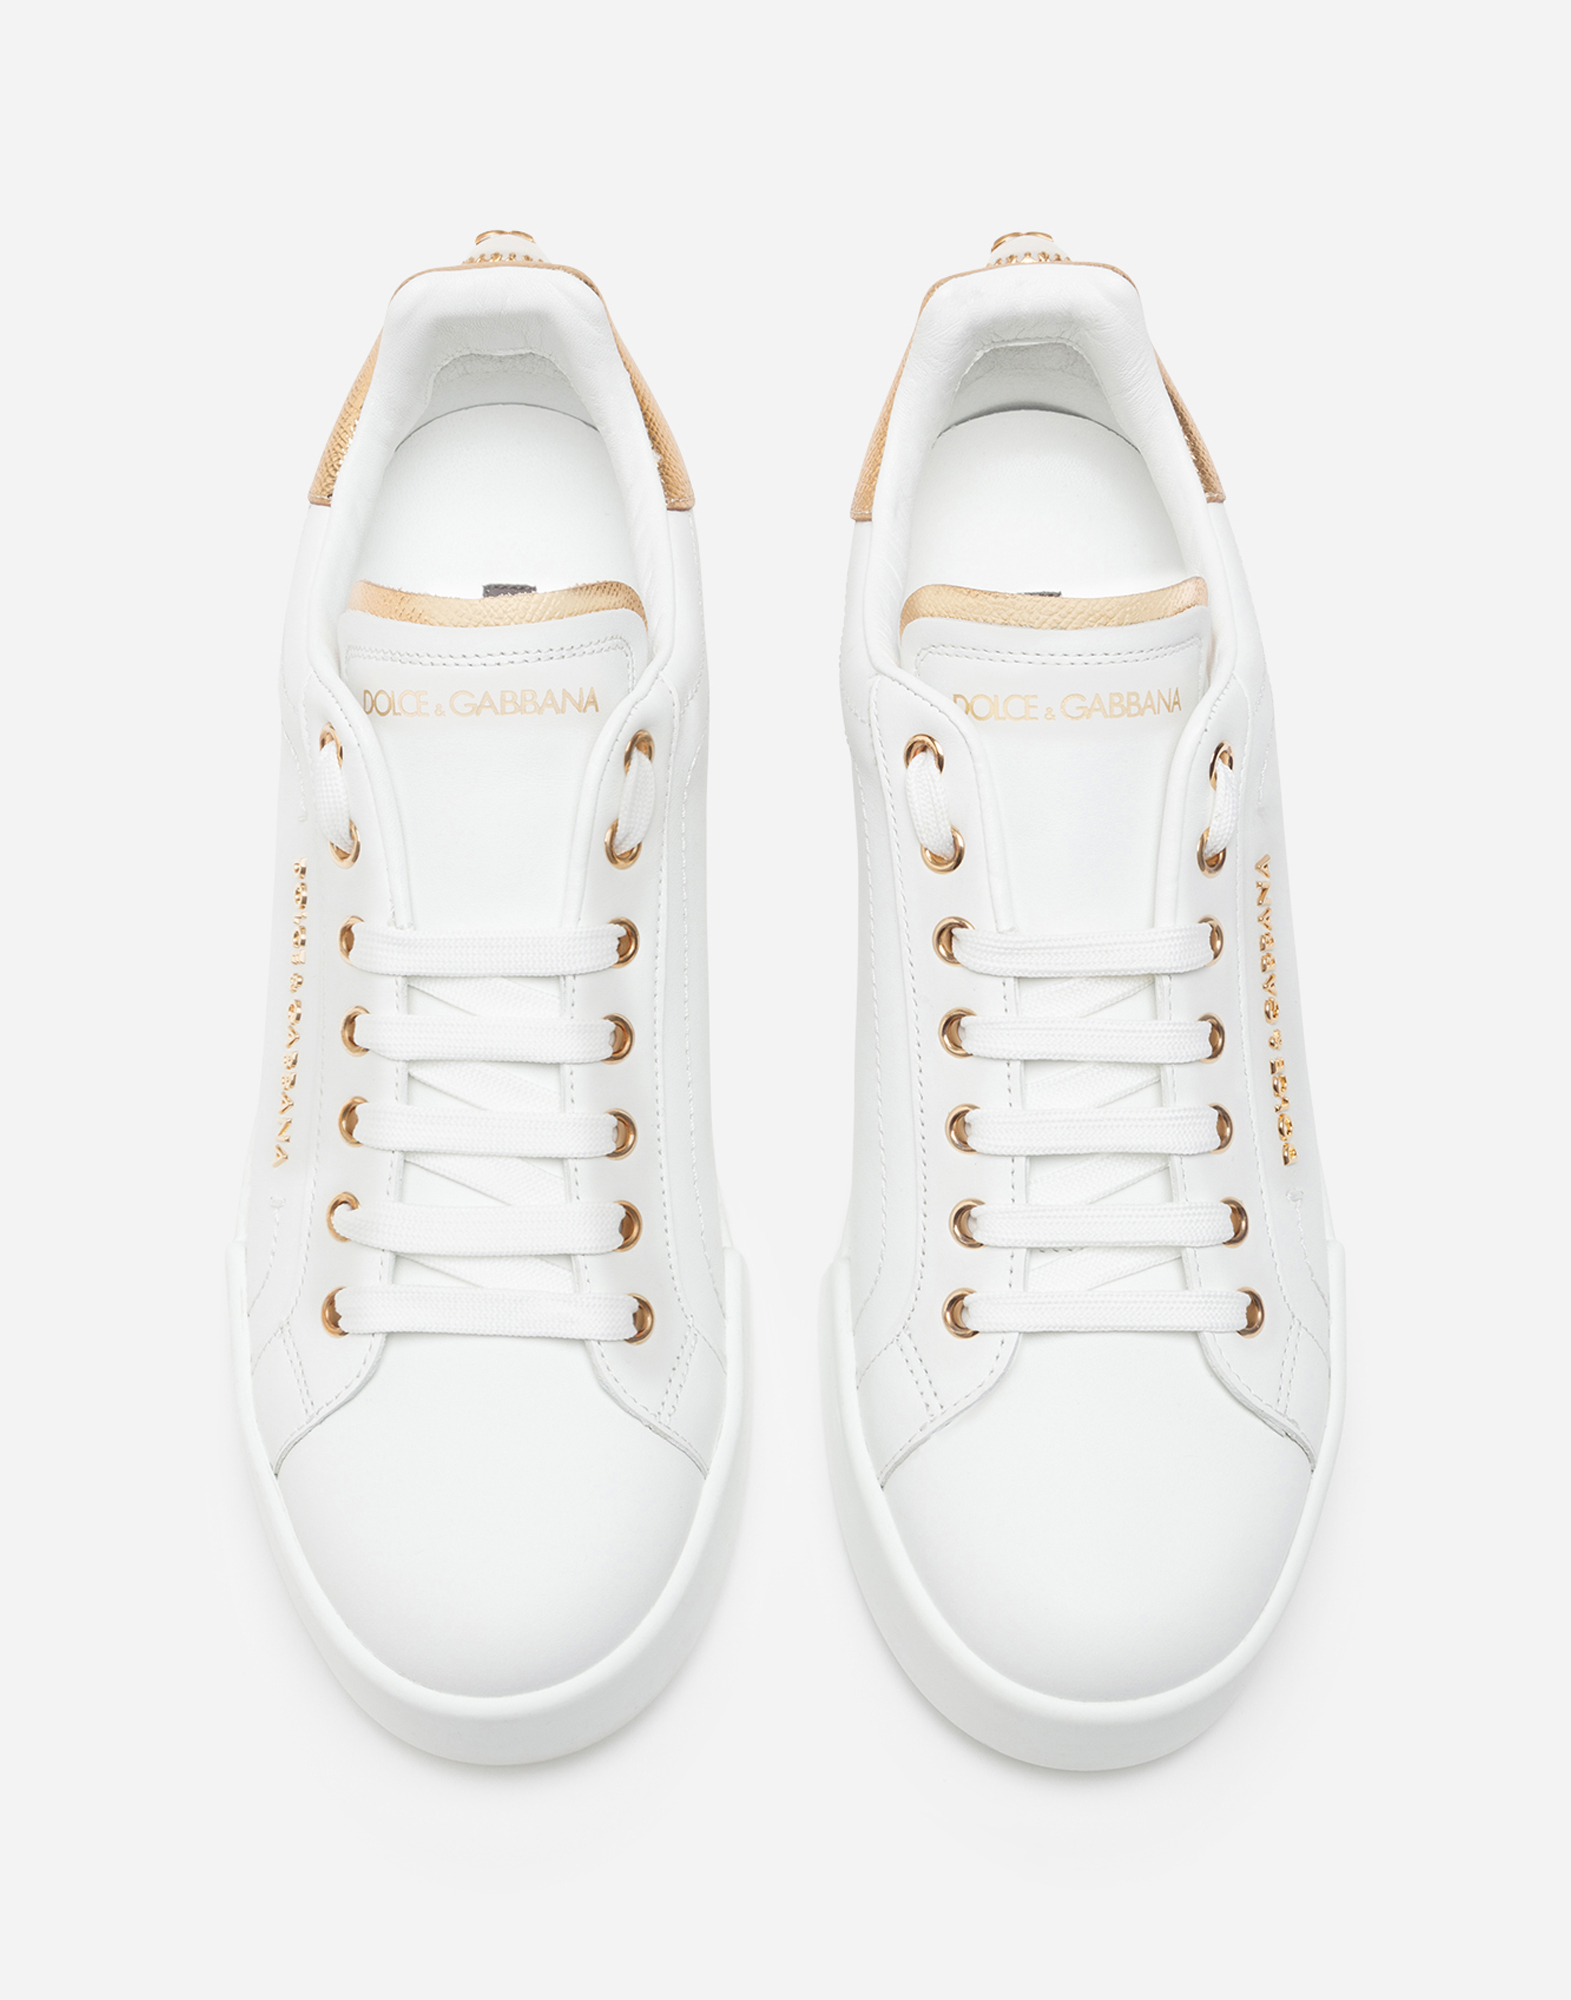 LEATHER PORTOFINO SNEAKERS WITH APPLIQUES